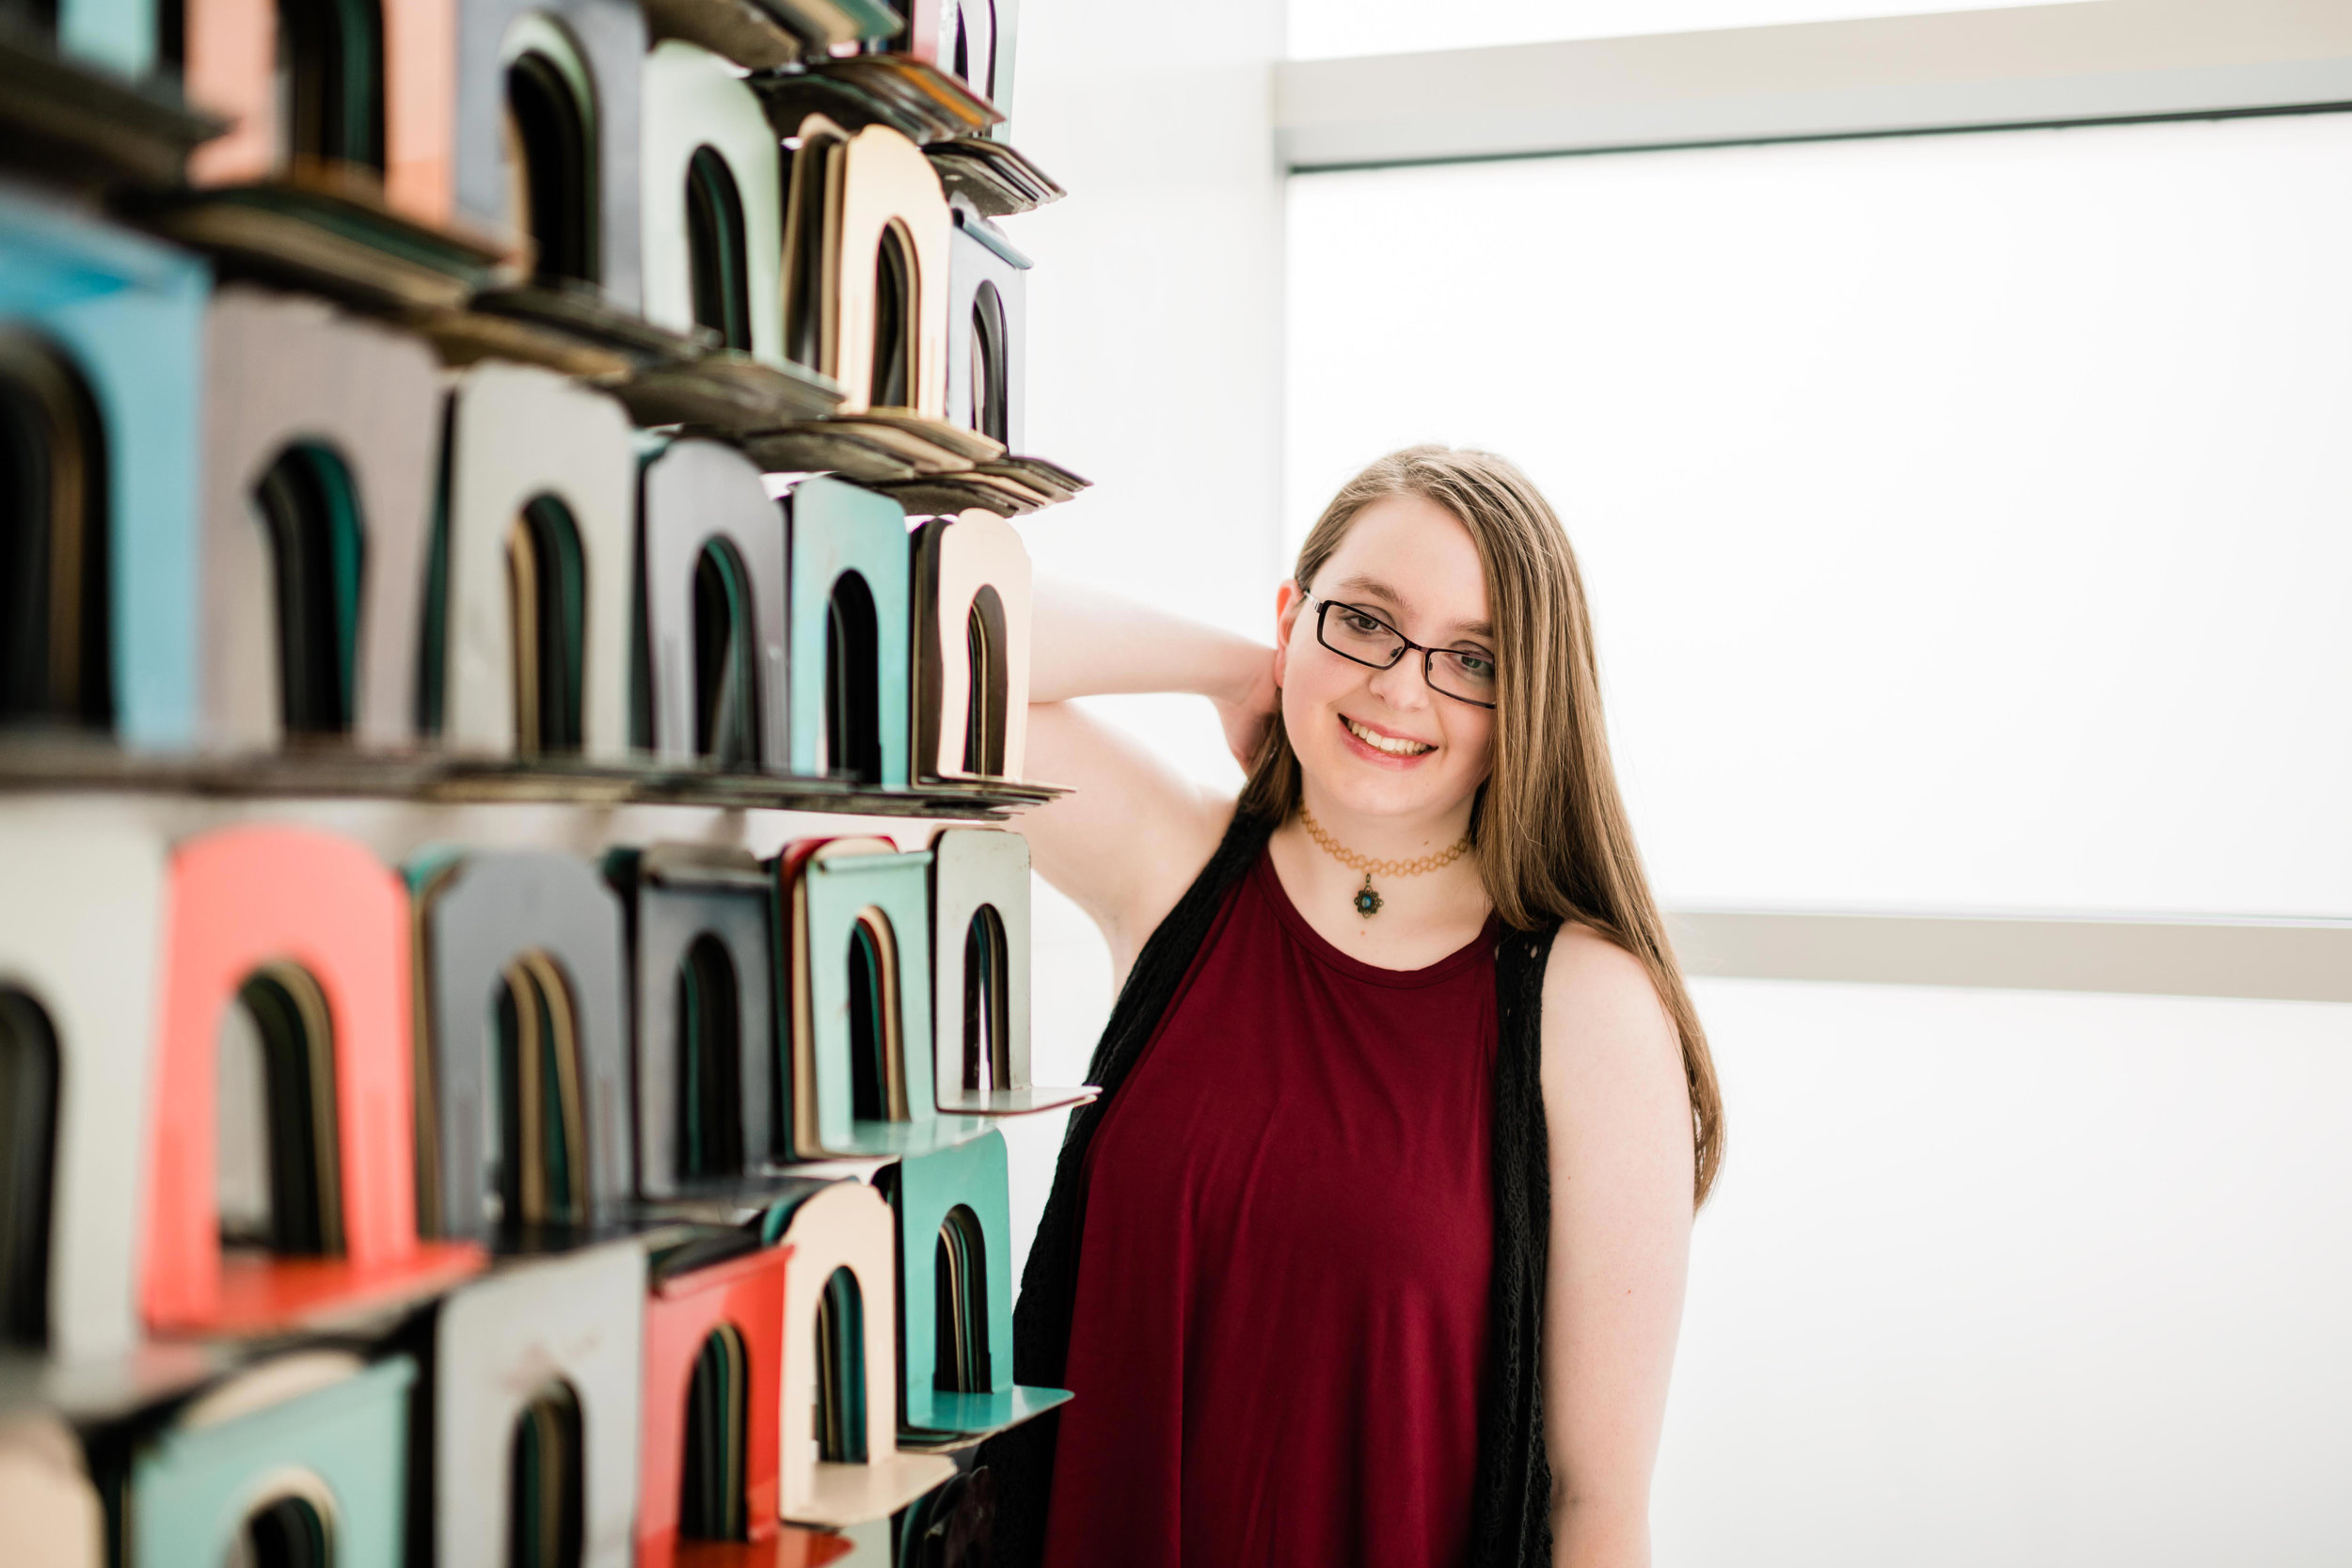 High school senior leaning up against a wall display of colorful bookends